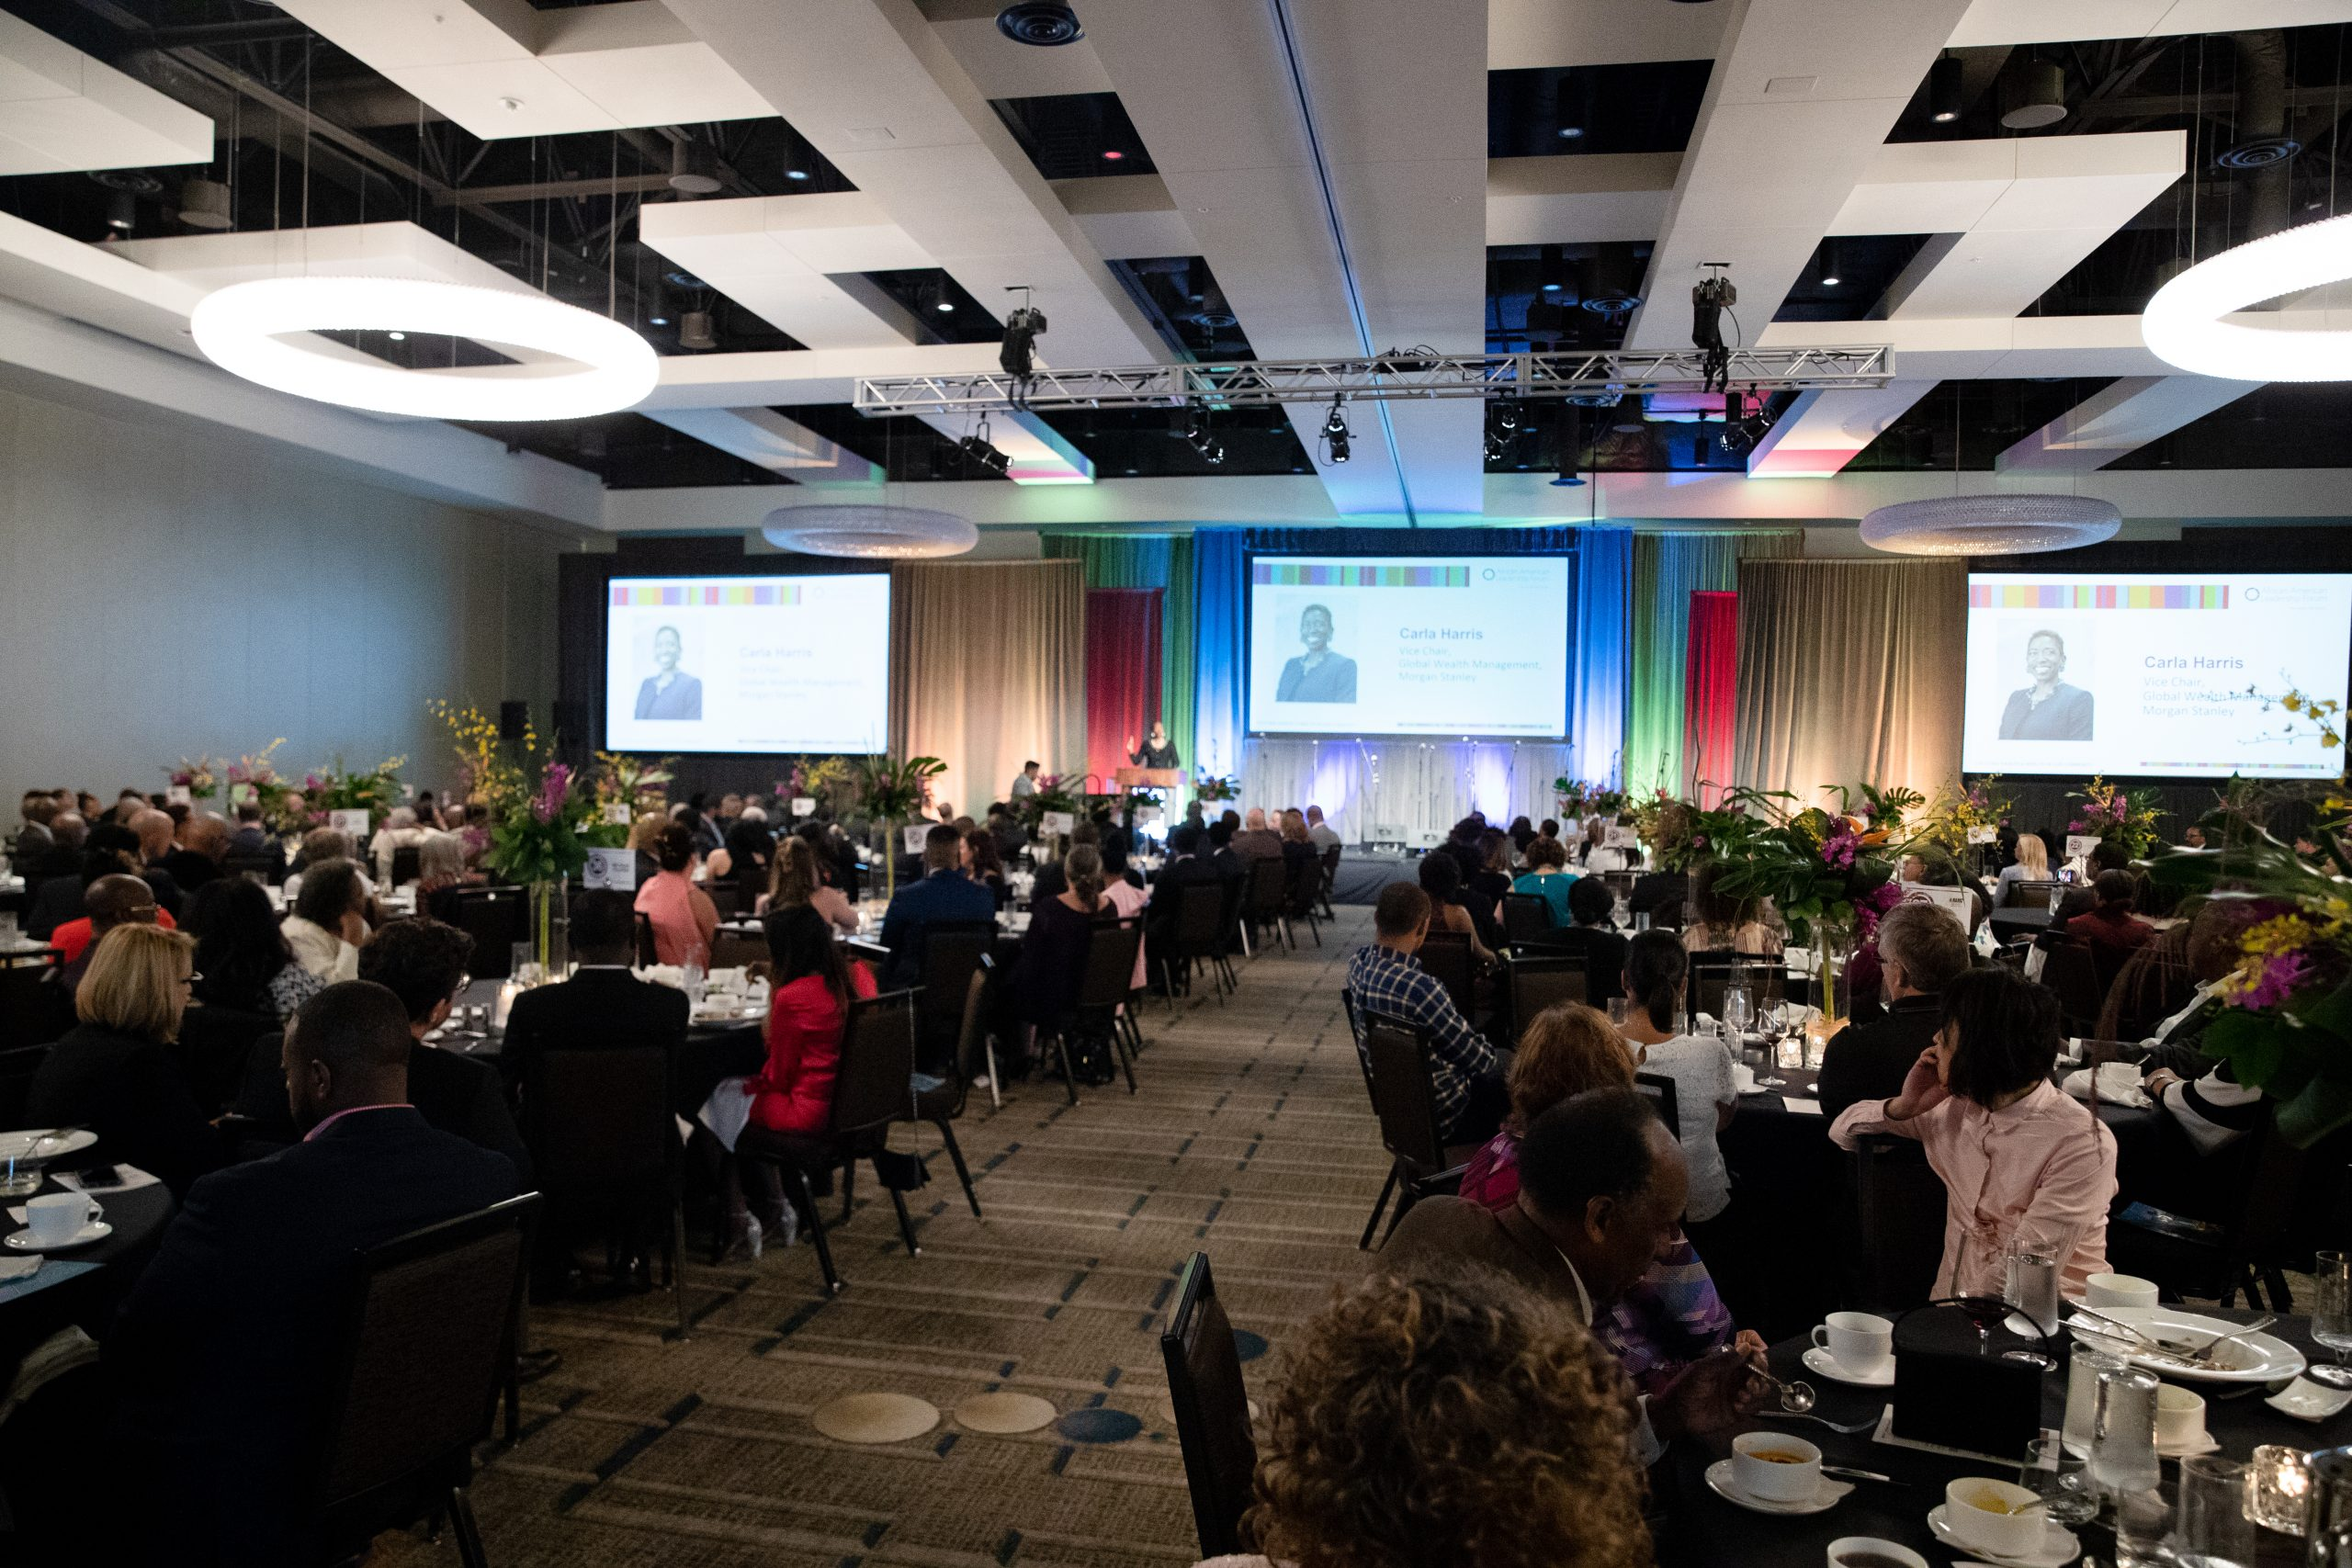 Announcing the African American Leadership Forum's 5th Annual Gala Breakfast Celebration